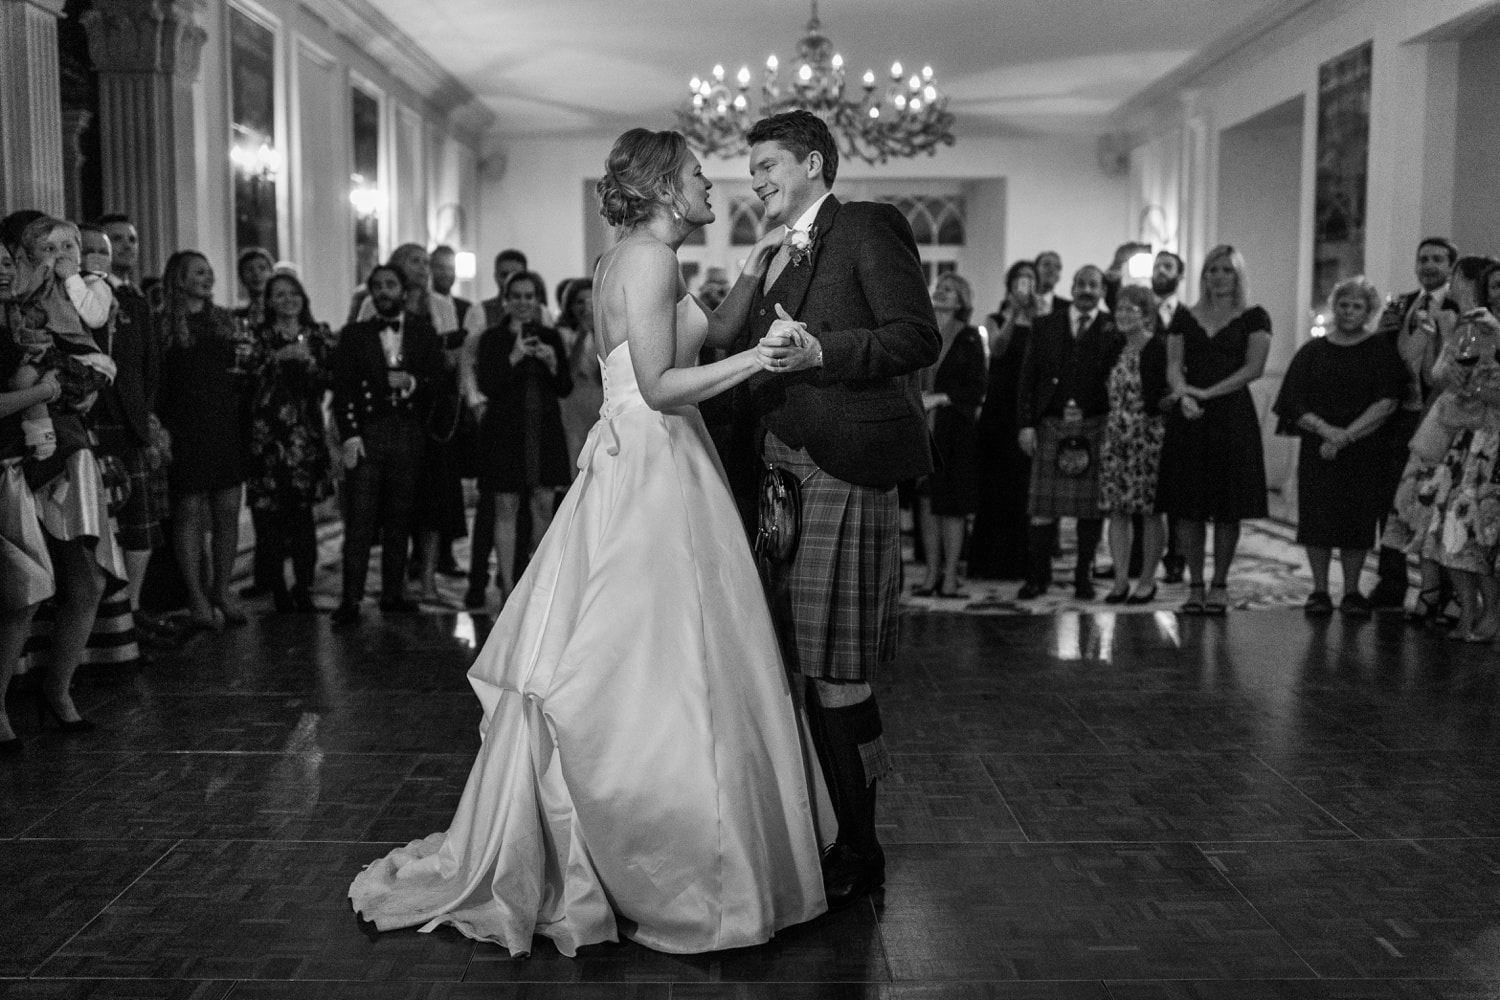 Winter wedding at the Lost Orangery in the Cotswolds